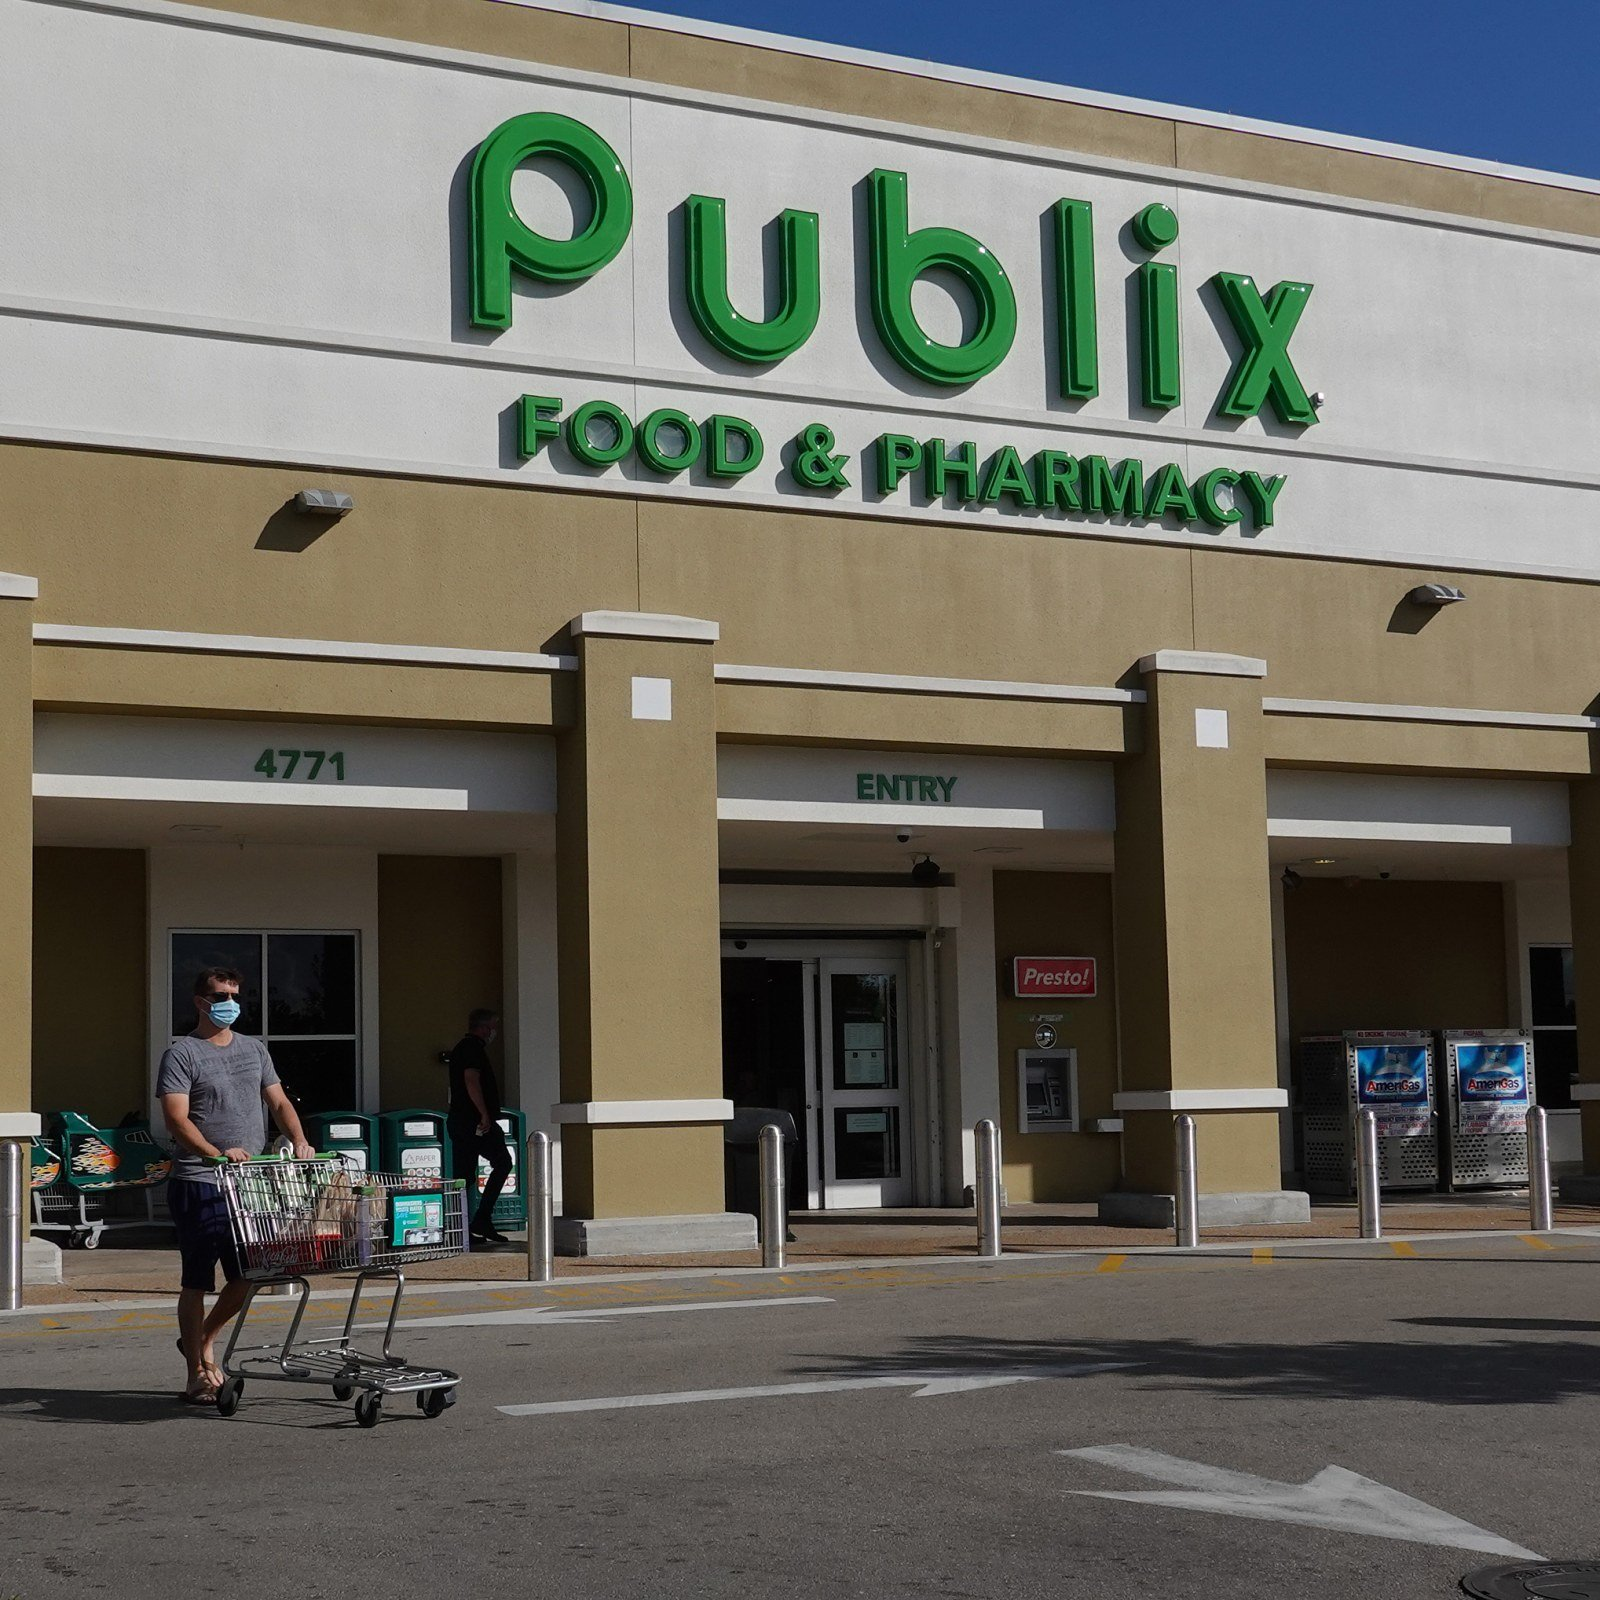 Trump-Supporting Doctor Assaults Hispanic Man Outside Publix, Police Say